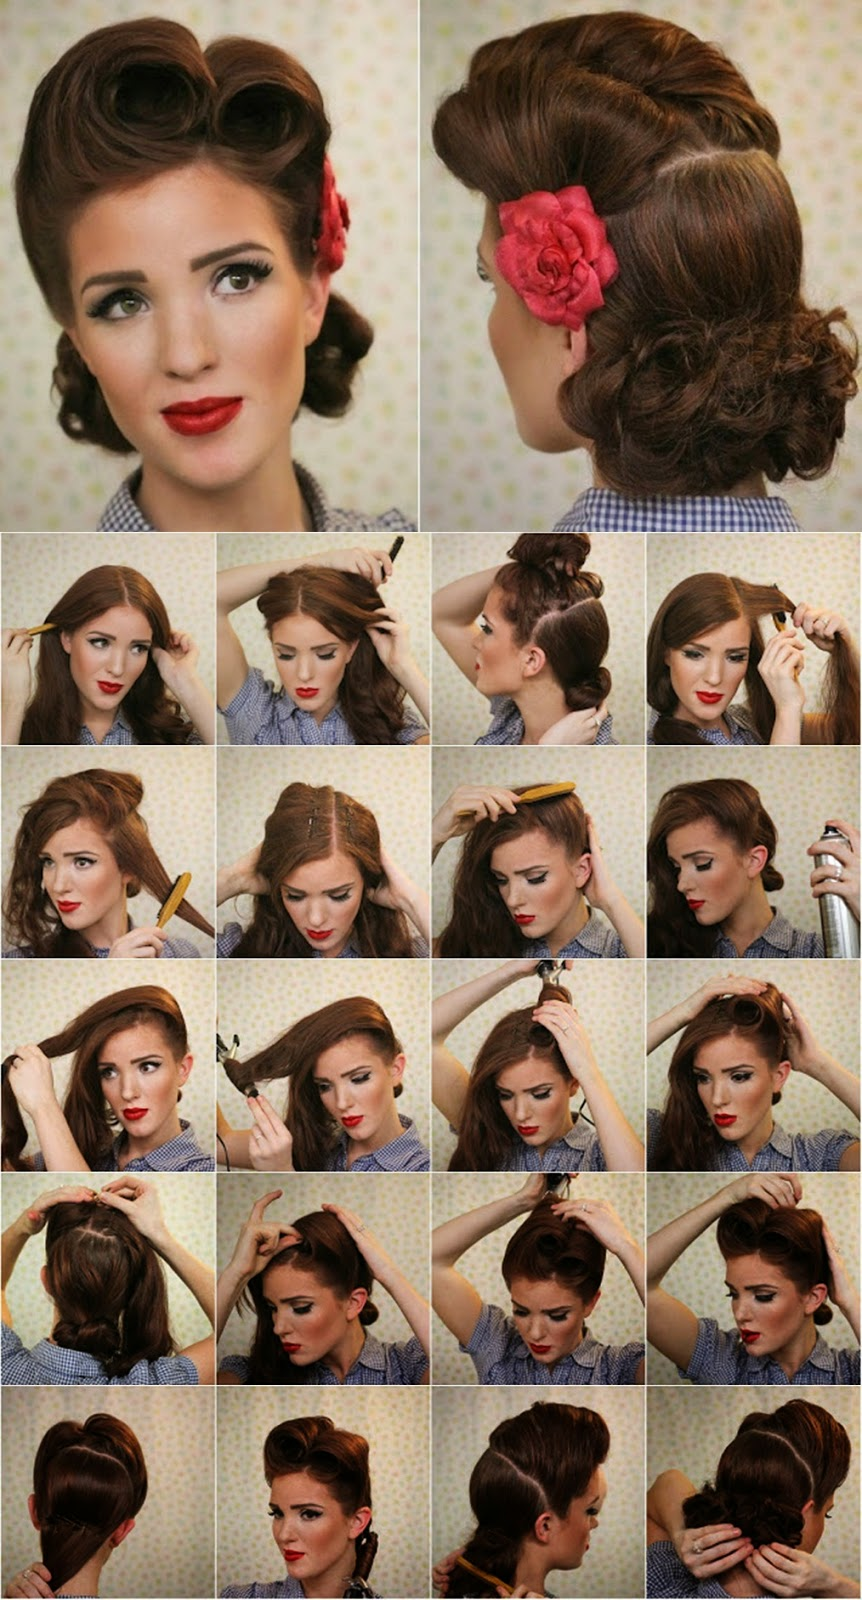 Vintage Look Pin-up Victory Rolls